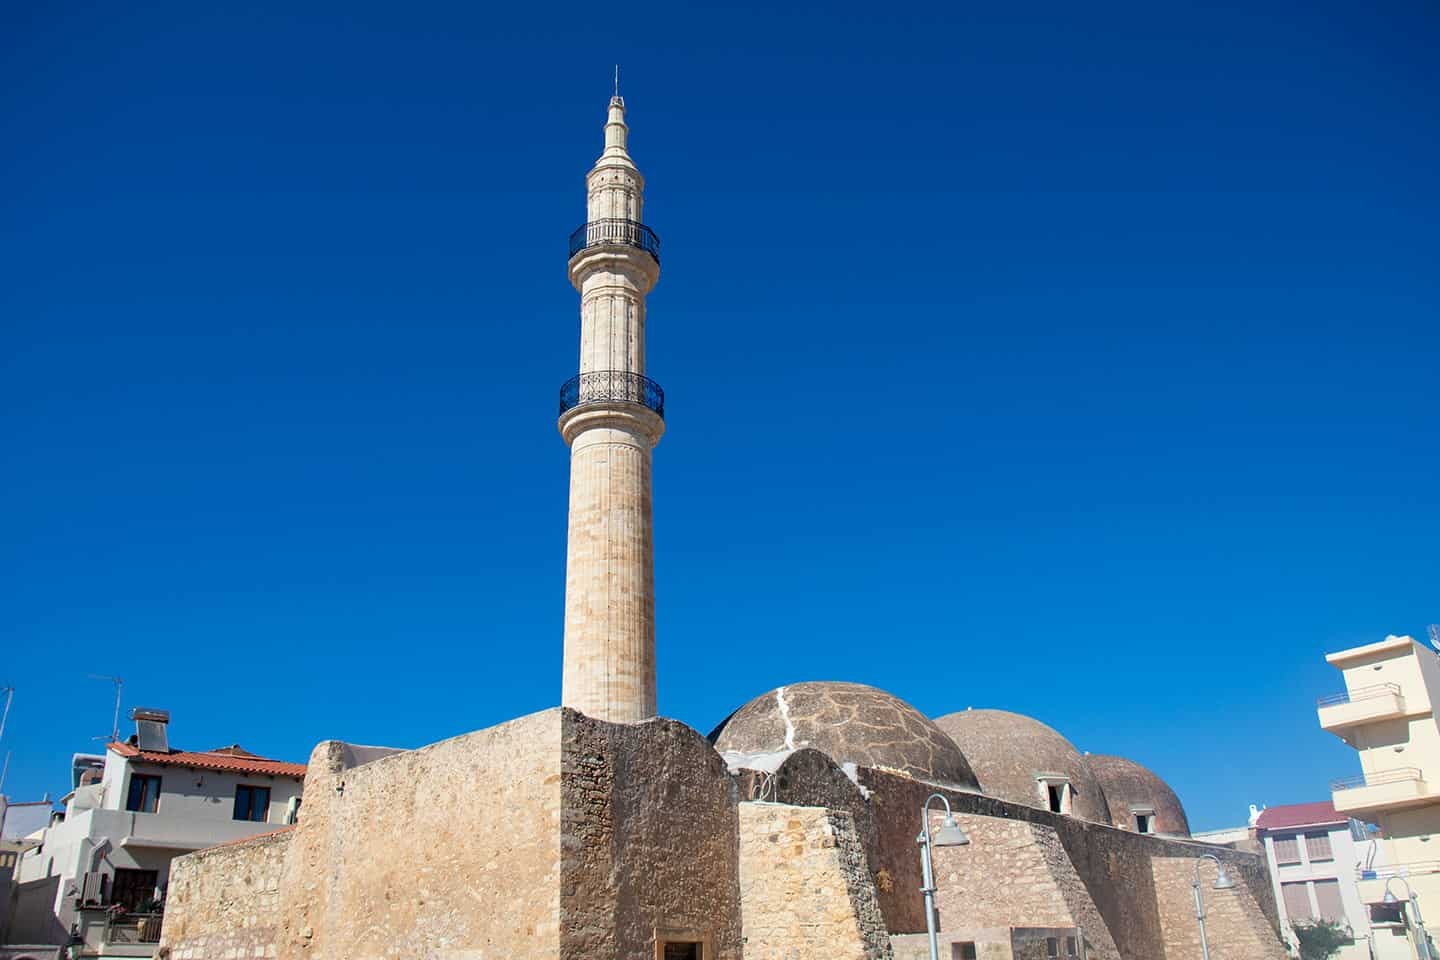 Image of the Neratze mosque in Rethymno